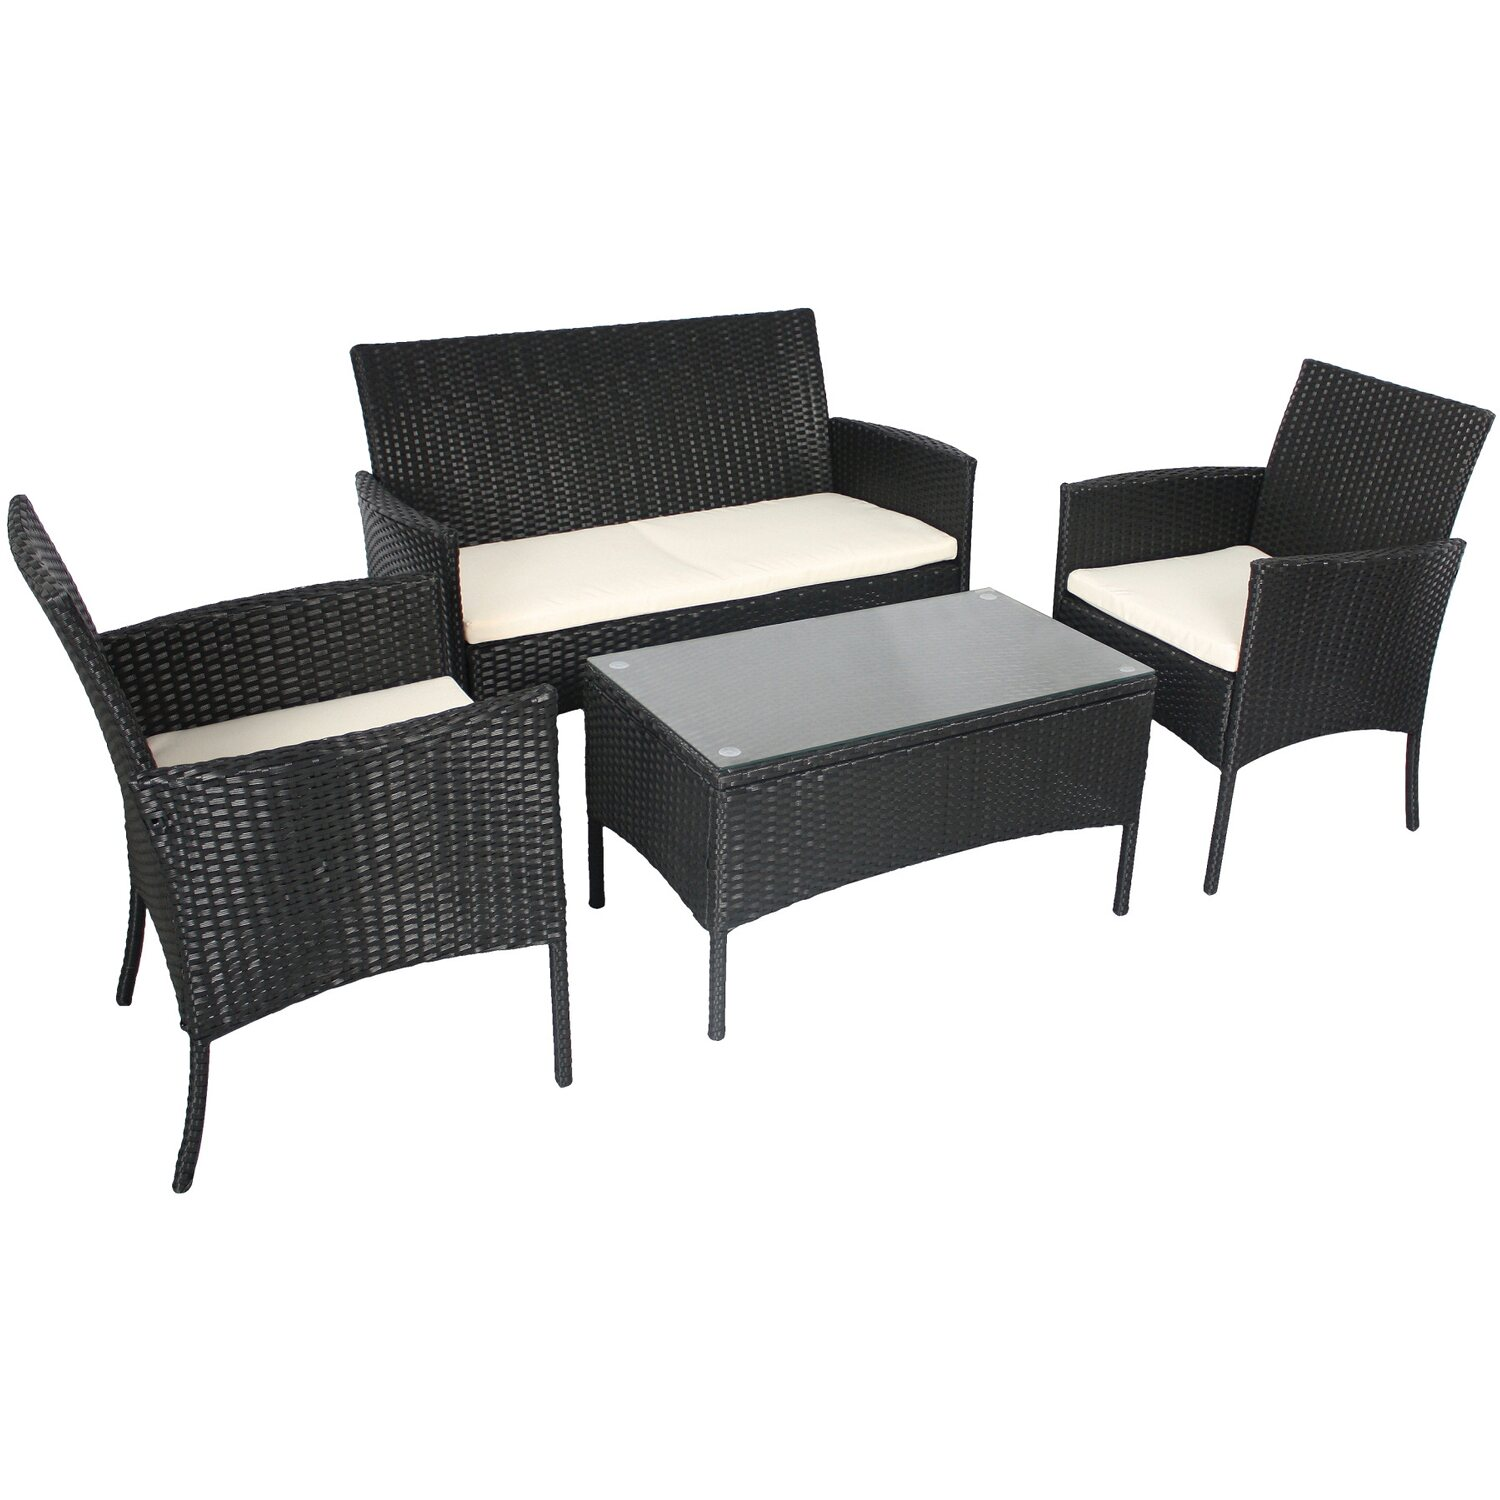 garten sofa selber bauen eigenschaften. Black Bedroom Furniture Sets. Home Design Ideas